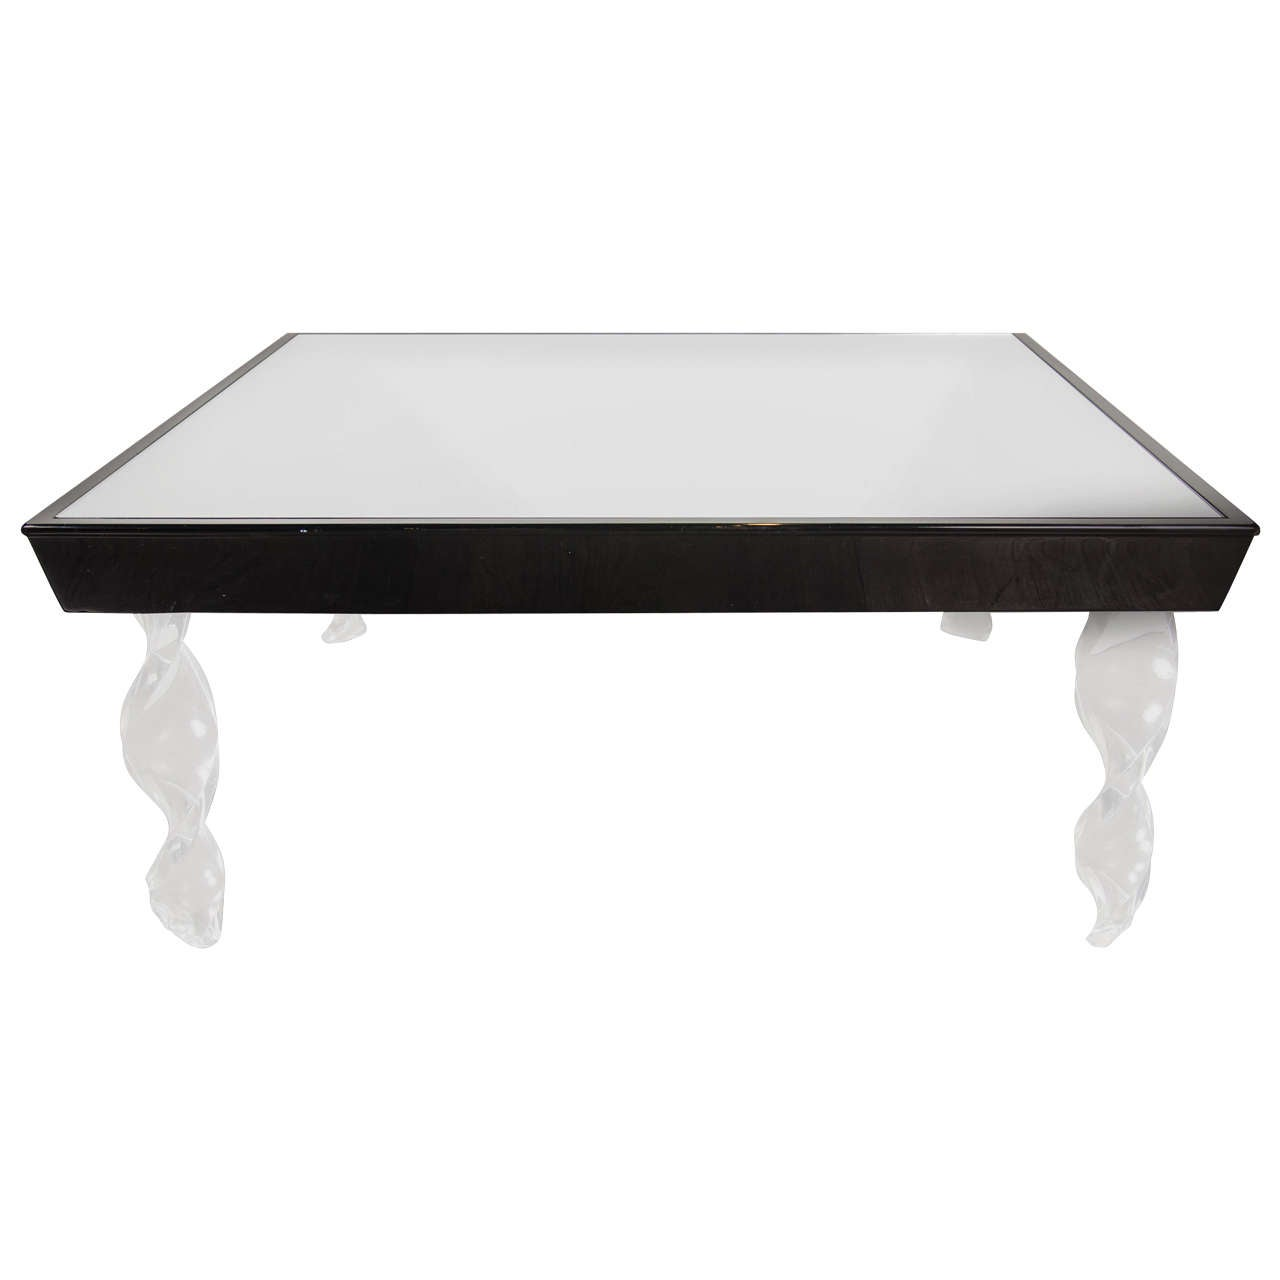 Art Deco Cocktail Table by Grosfeld House in Lucite, Black Lacquer and Mirror